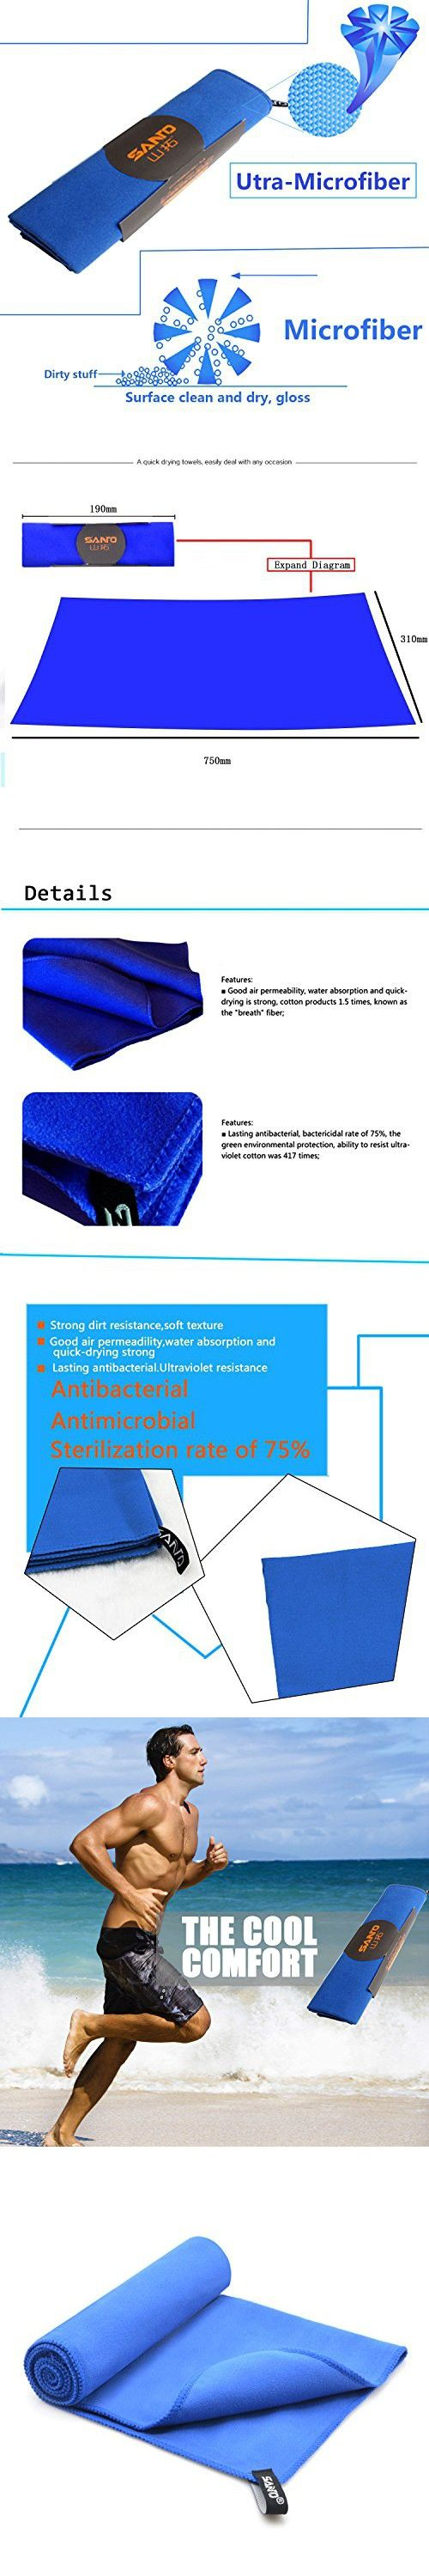 Be Young Quick Dry Towel,Microfiber Towel,Sports Towel,Yoga Towel,Best Travel Towel,Swim Towel,Camping Towel,Lightweight,Highly Absorbent,Suitable for Camping, Gym, Beach, Swimming, Backpacking (Blue)